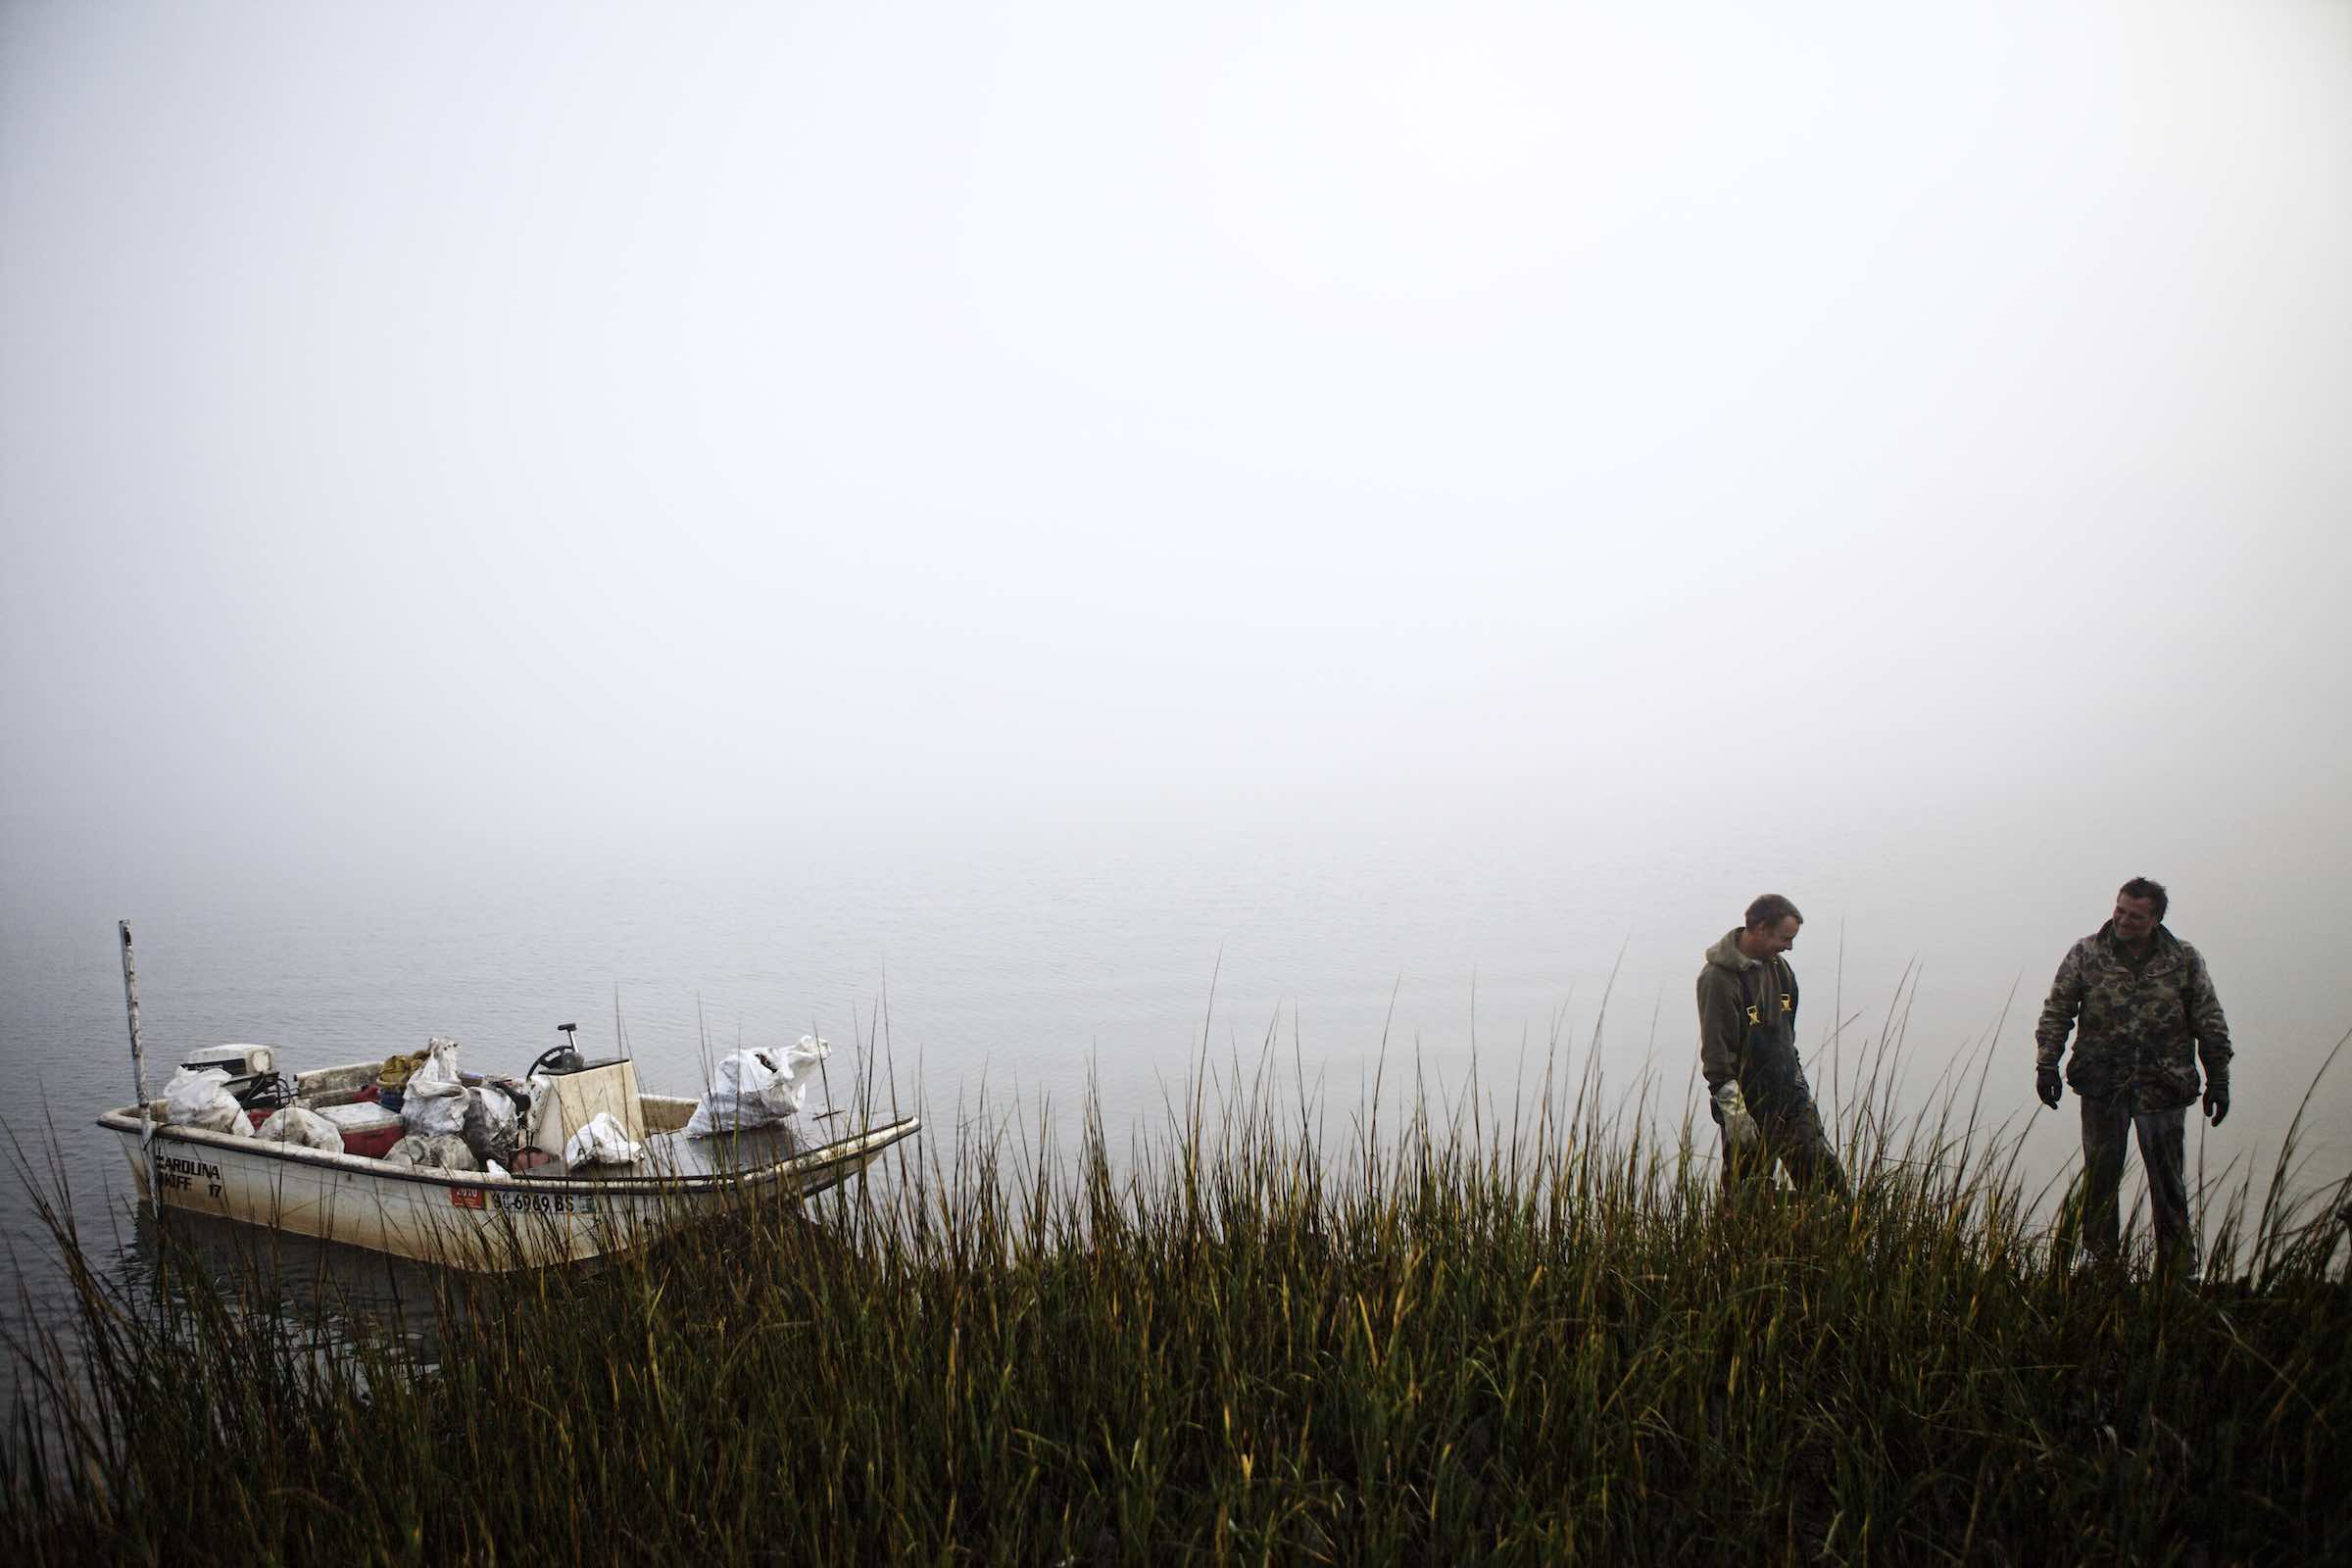 Jody Horton Photography - Fishermen and their boat standing behind tall marsh grasses.